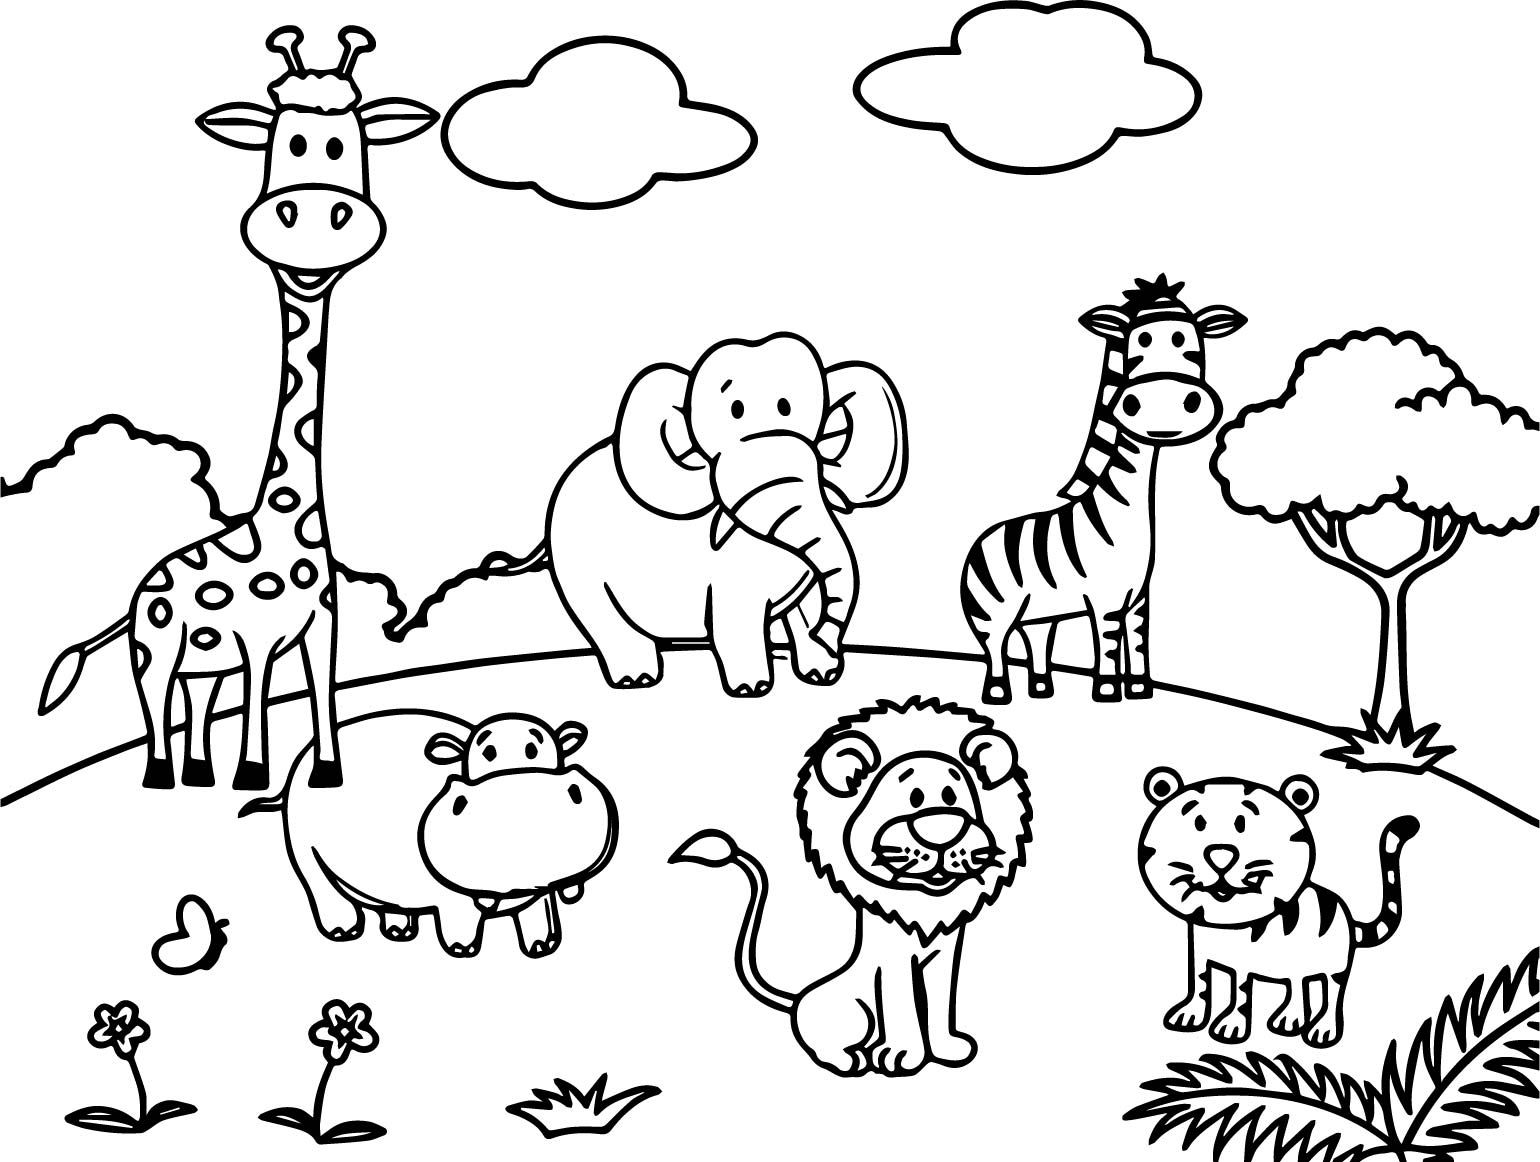 safari animal coloring pages safari animals animal coloring books coloring safari animal pages